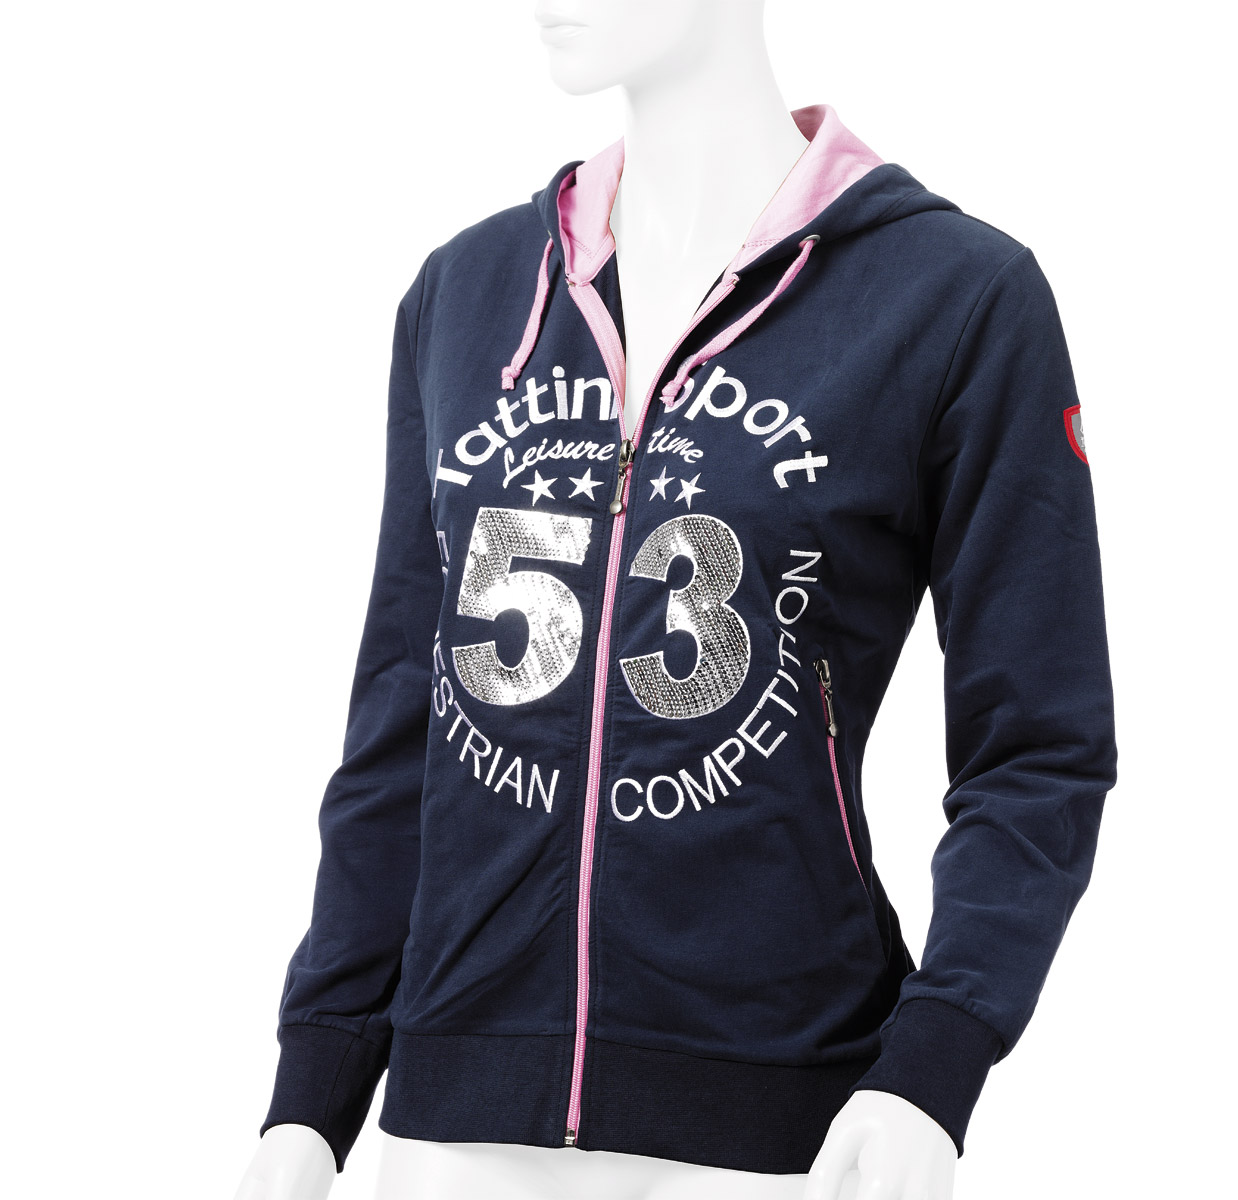 Tattini Ladies Summer Sweatshirt